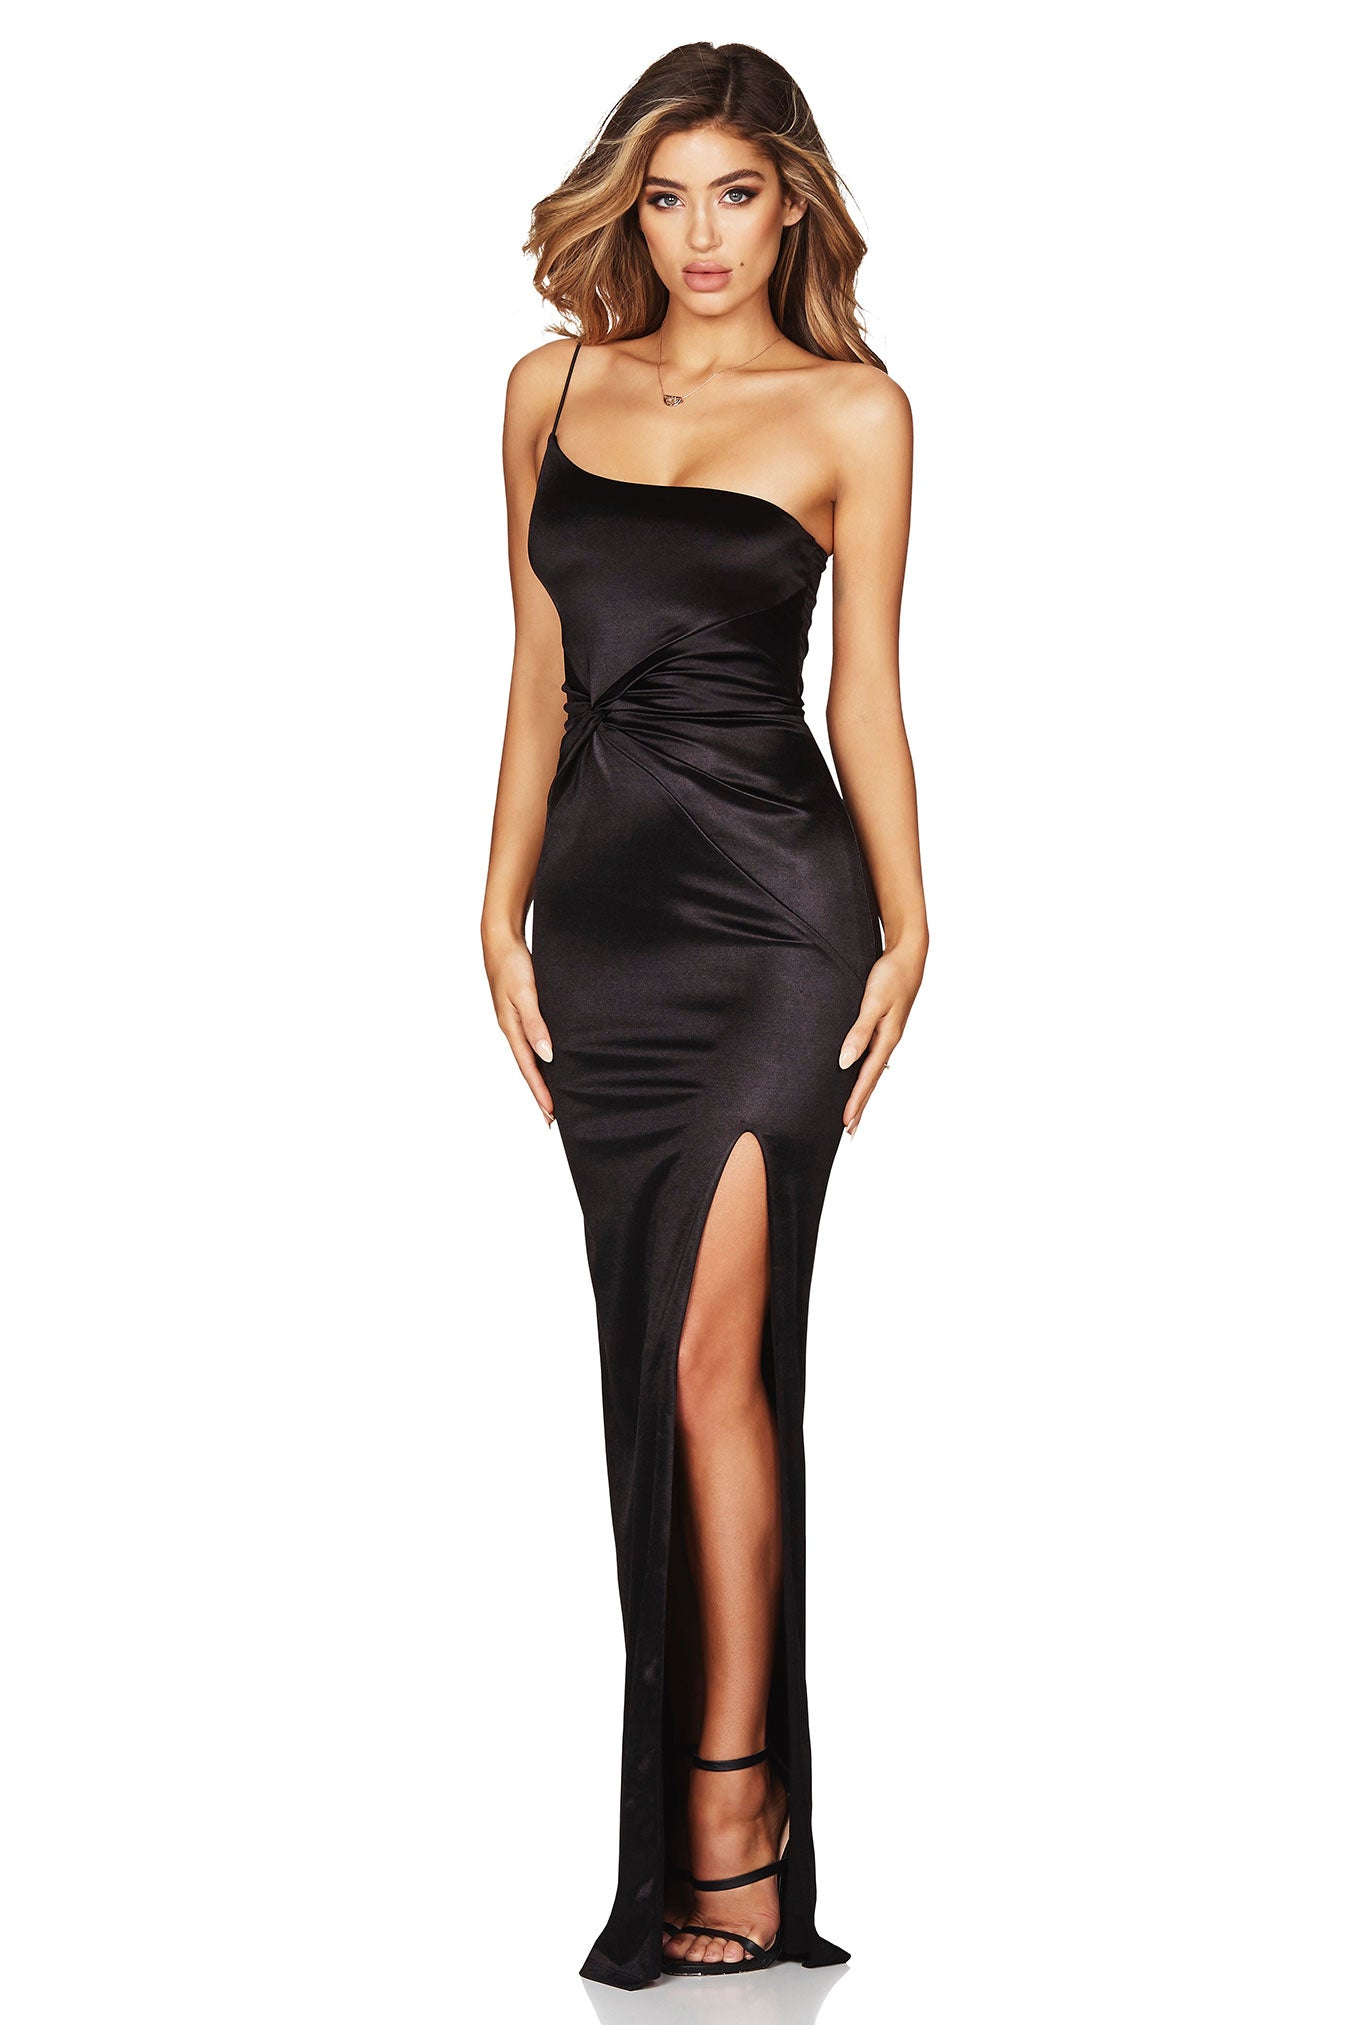 b0b8b83f2a4c SATIN EDIT - Lady Luxe Boutique